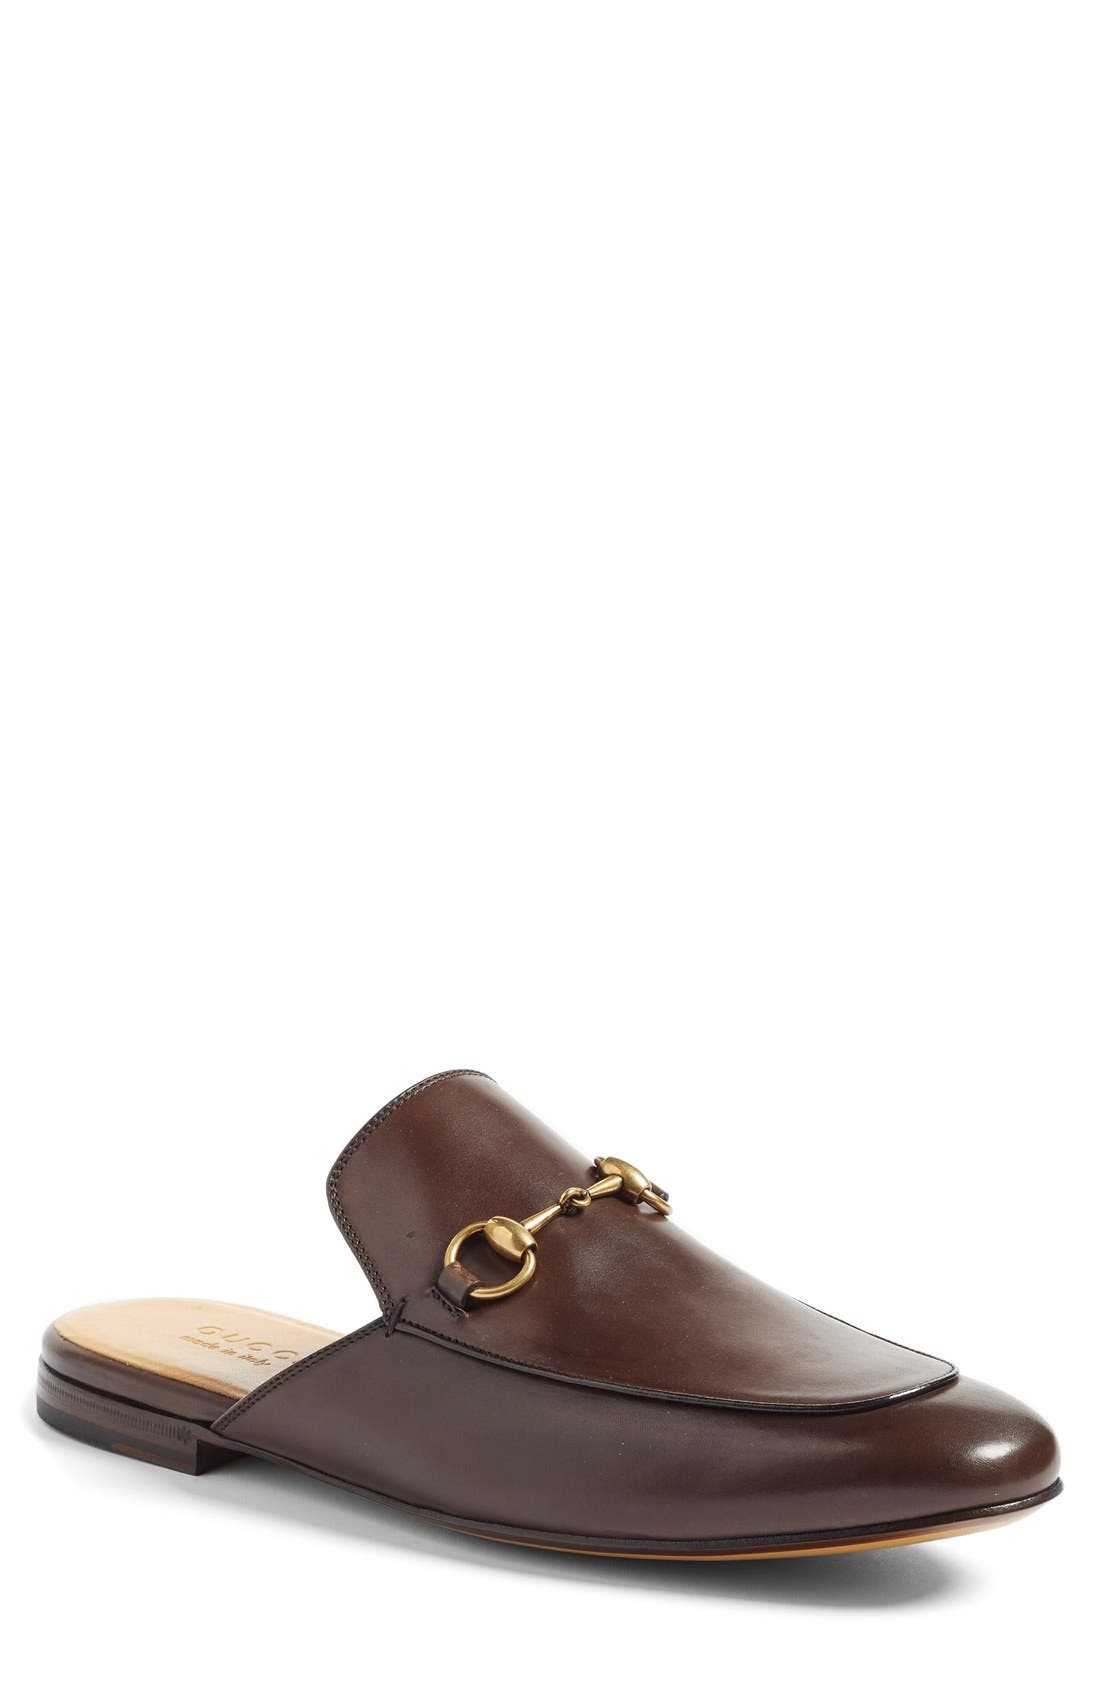 Straw Princetown Slipper,                         Main,                         color, Brown Leather